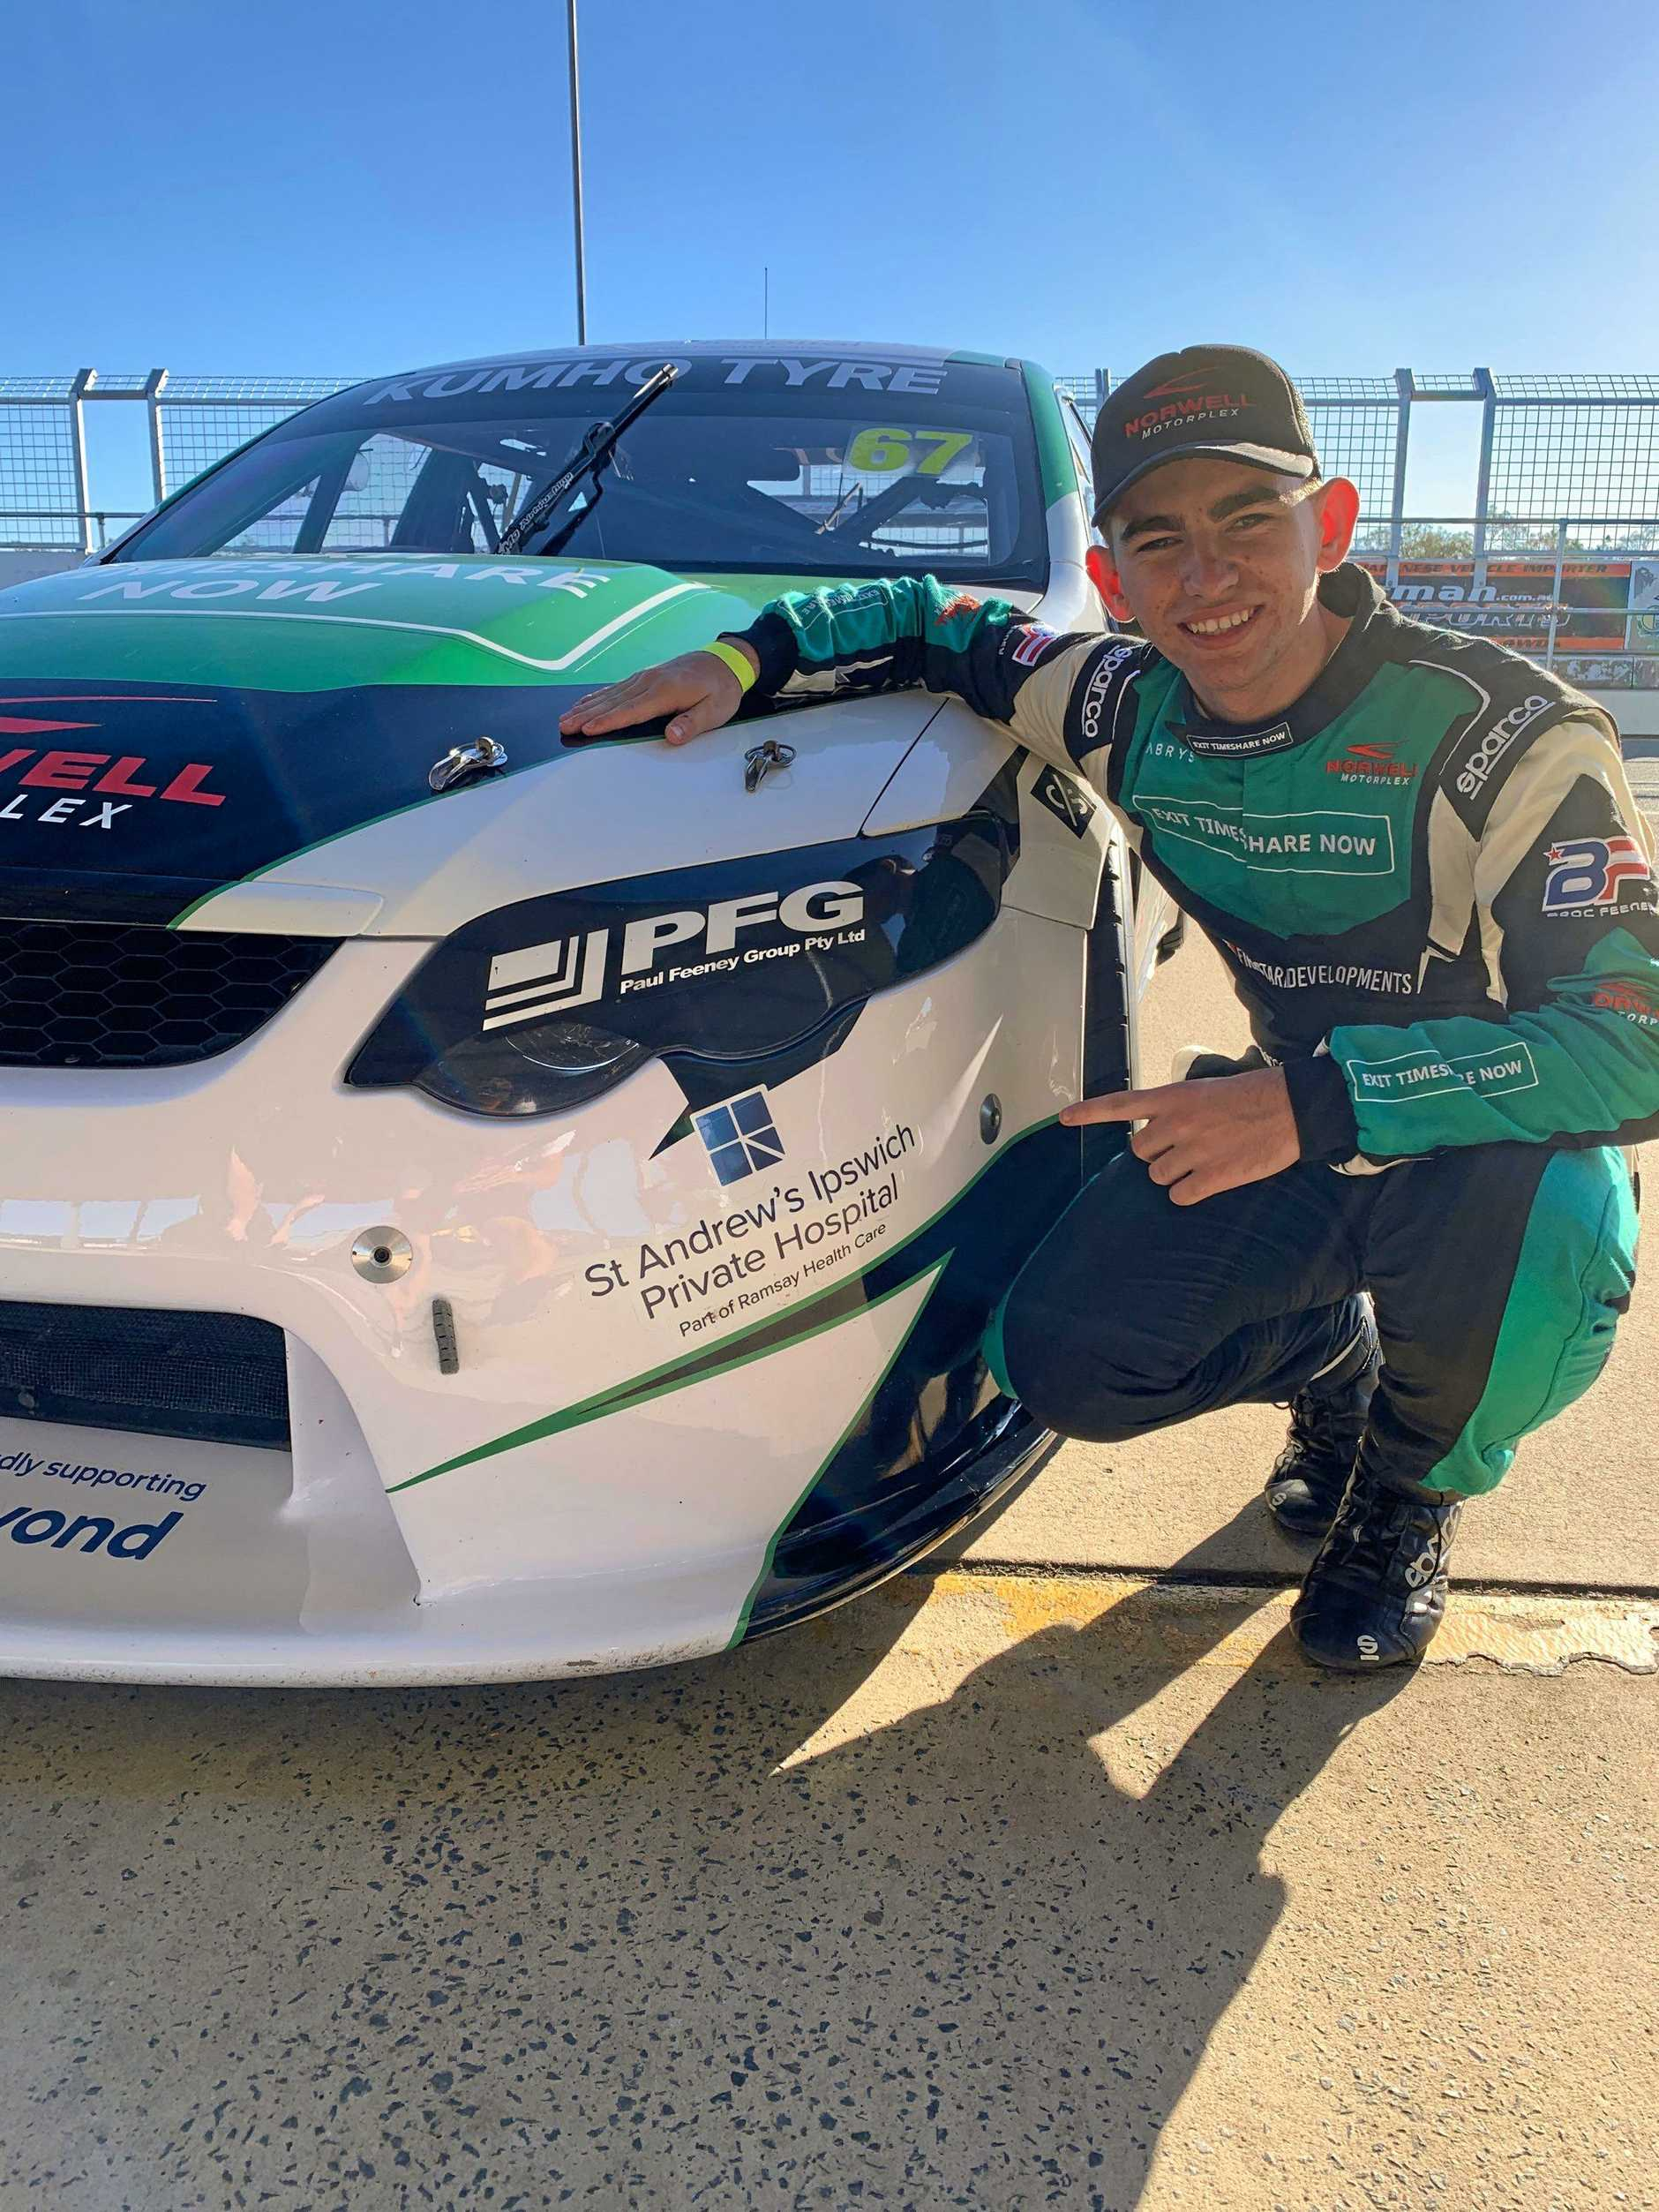 St Andrew's Private Hospital have come on board to assist Ipswich racer Broc Feeney in this weekend's Super3 event at Queensland Raceway.